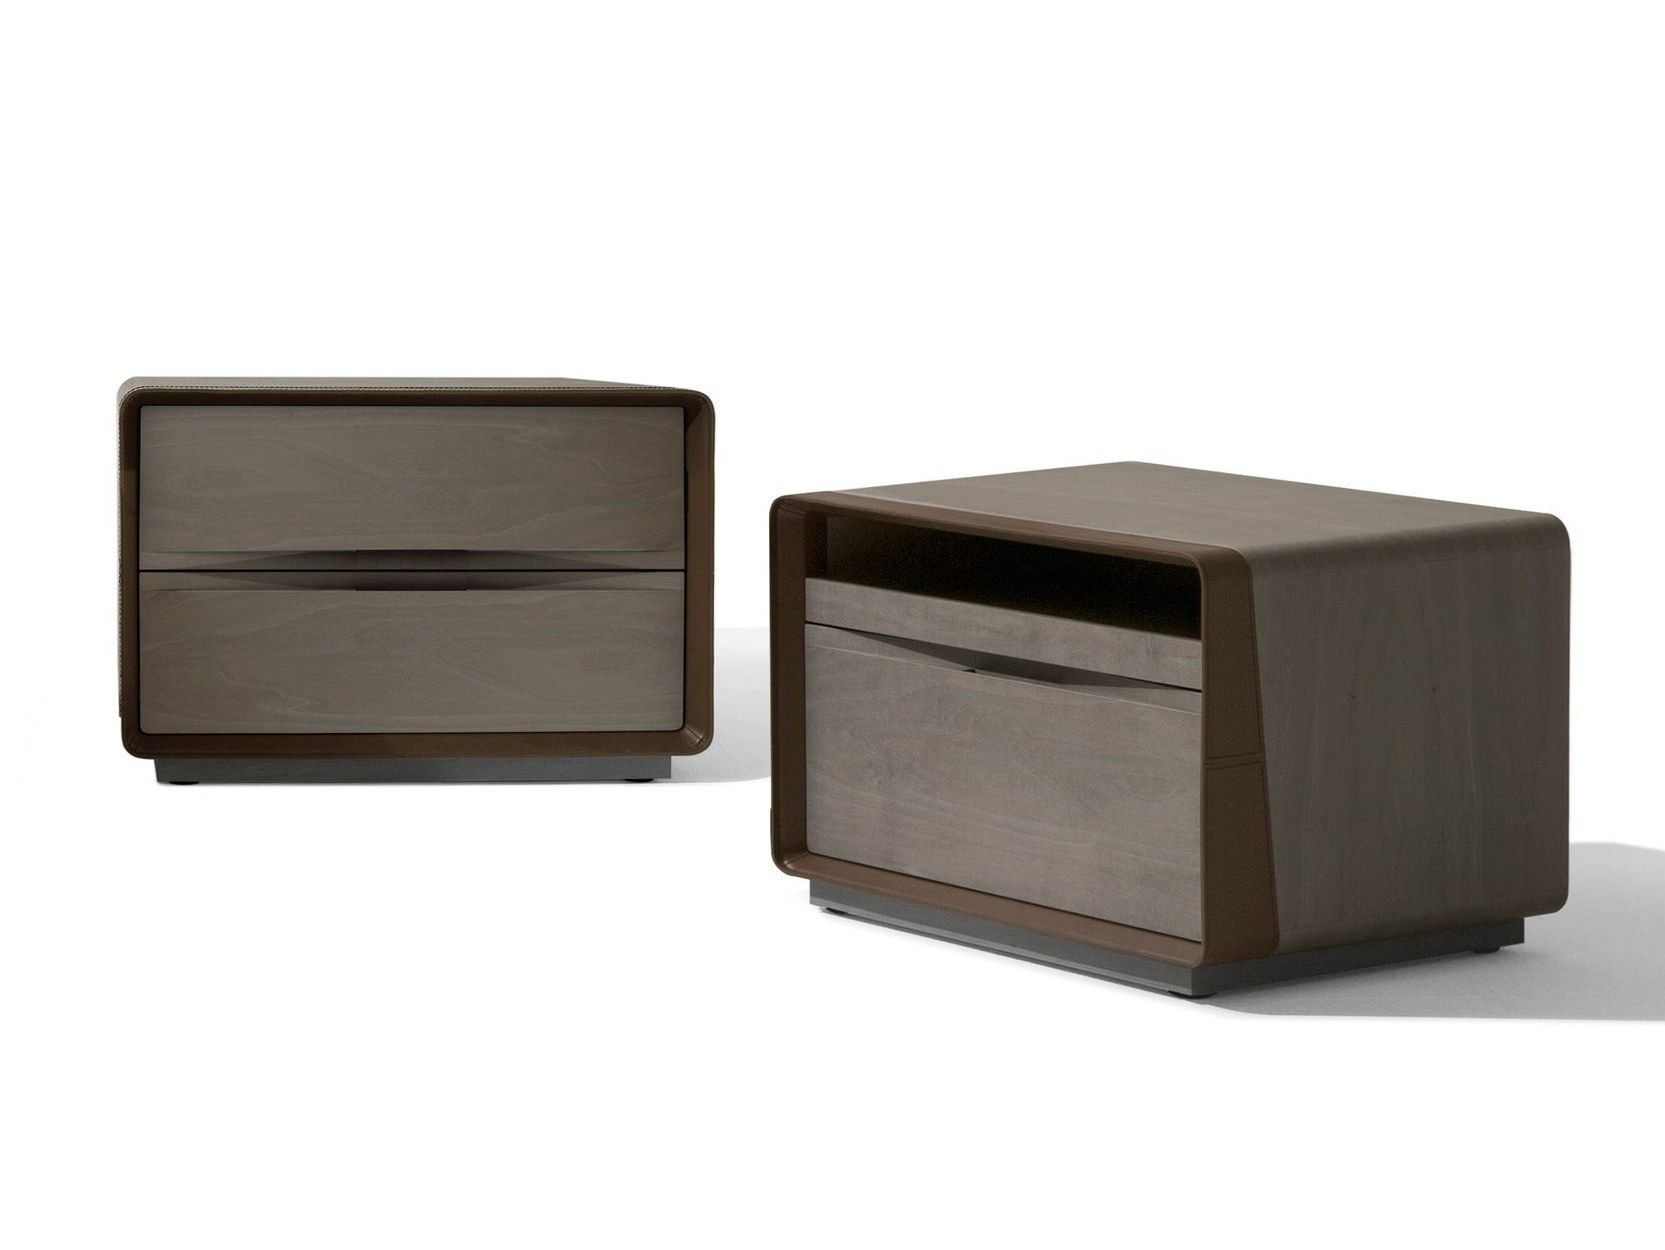 Rectangular Maple Bedside Table With Drawers Frame | Bedside intended for Madison Park Kagen Grey Sideboards (Image 26 of 30)